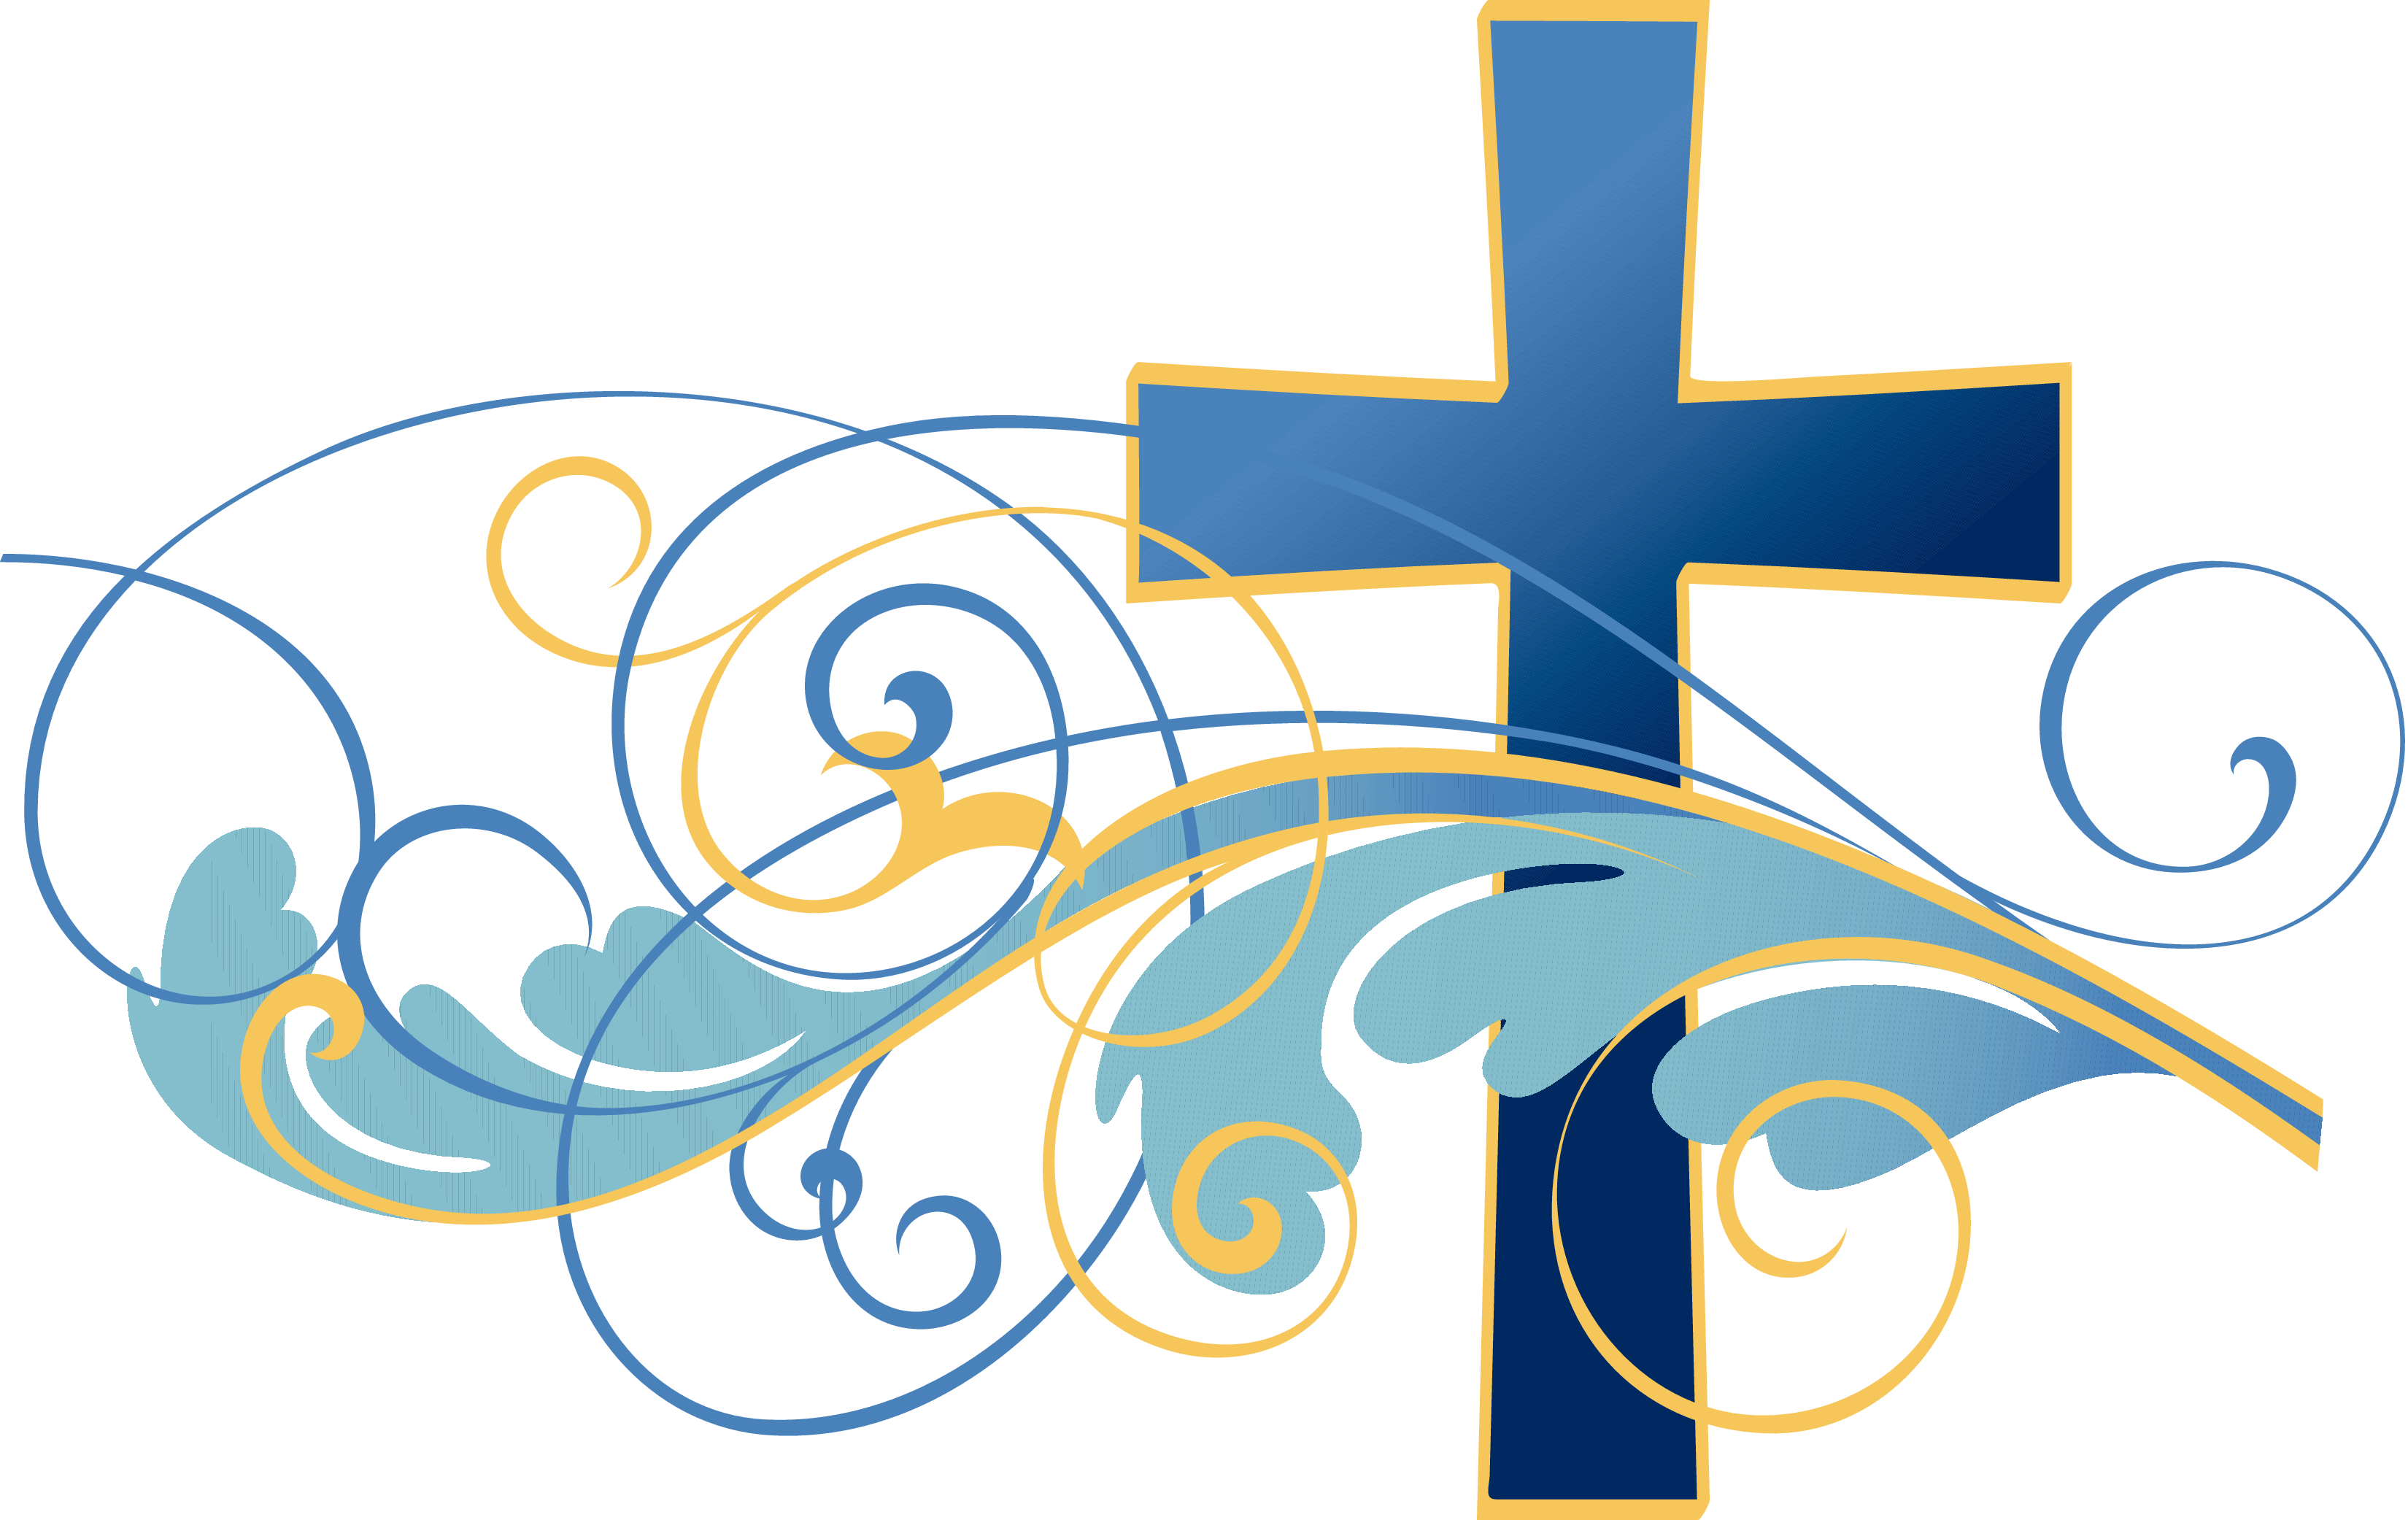 Baptism holy family catholic. Words clipart life